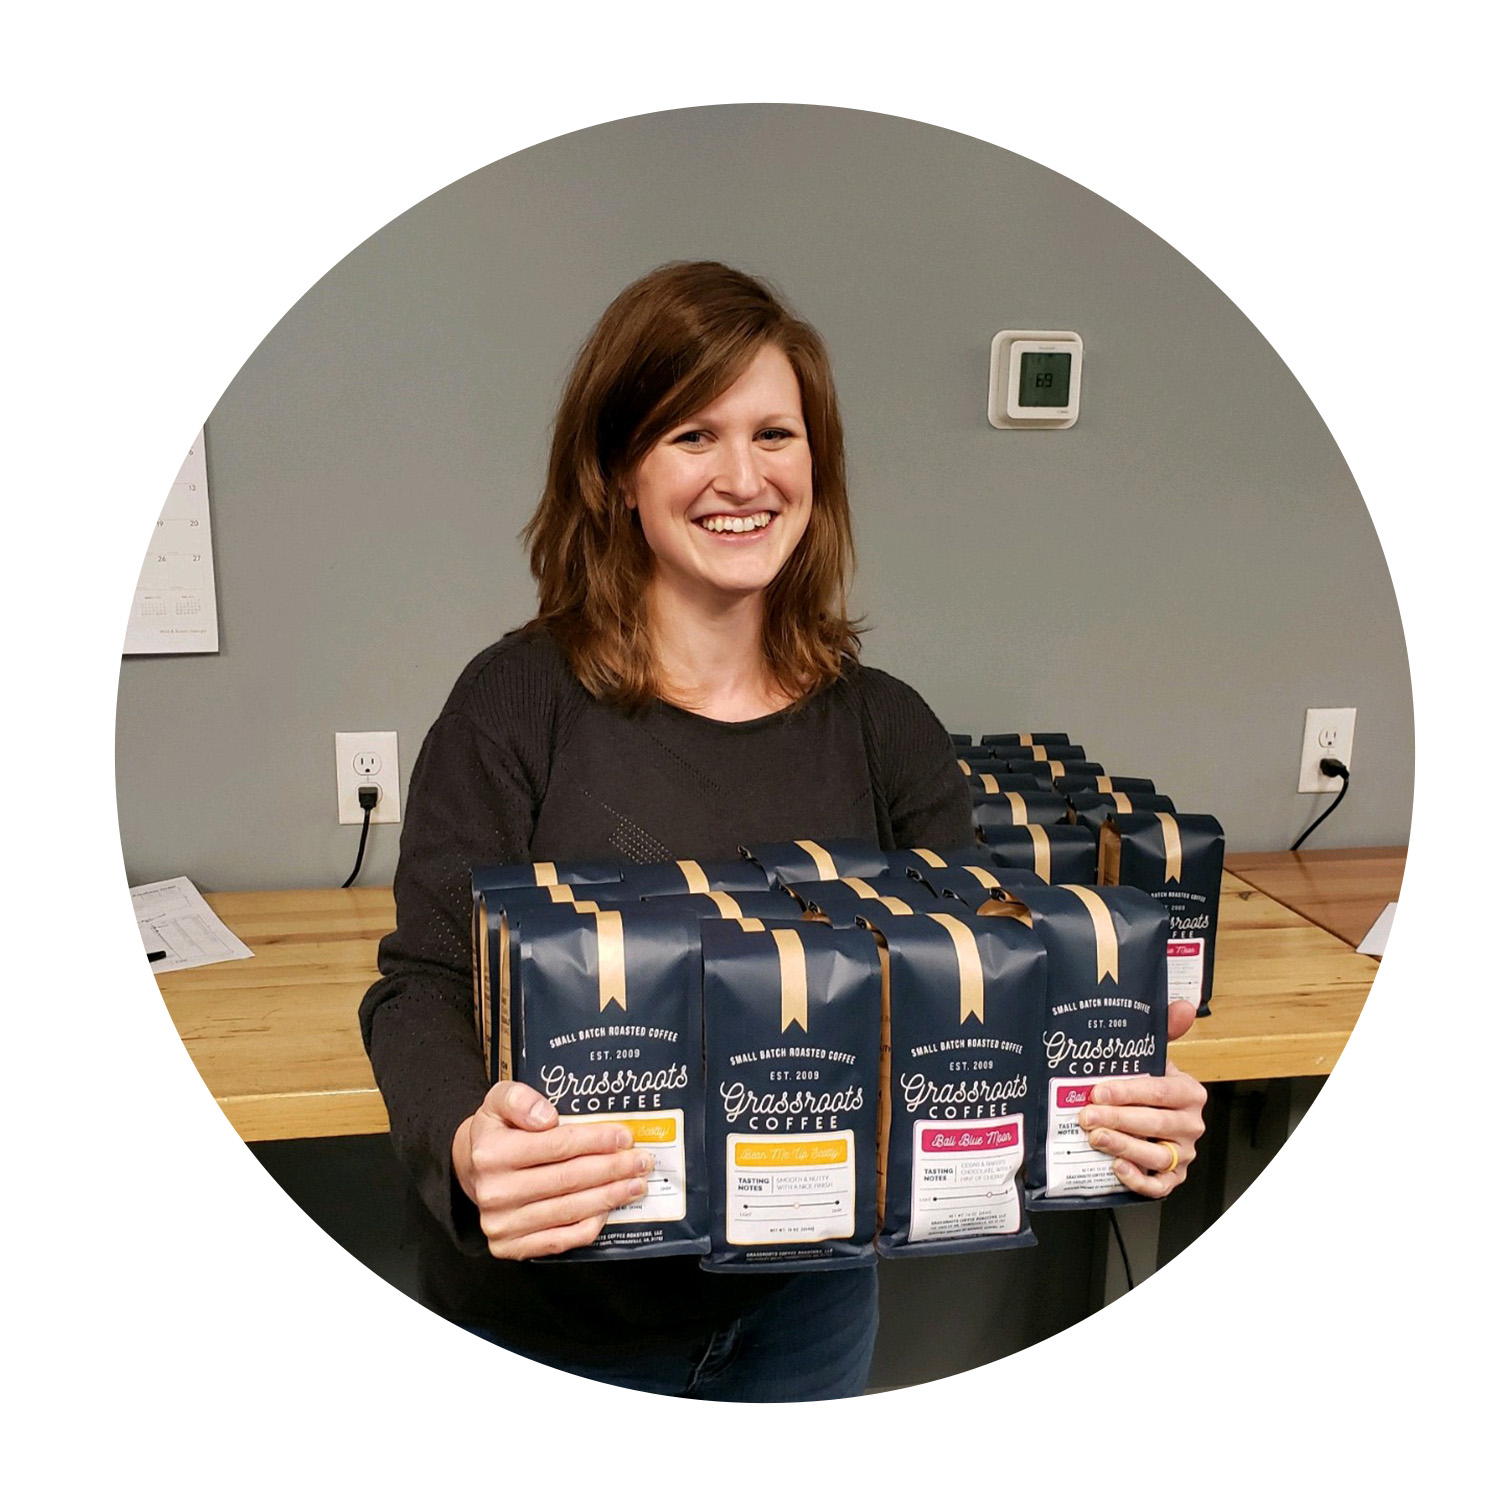 Amanda Humphries - Wholesale Manager   Amanda takes care of our wholesale customers and keeps us busy with new projects at the roaster warehouse! If you've got leads for wholesale coffee customers - send them her way! She will thank you with … well, coffee.    Favorite Coffee: Georgia Blues